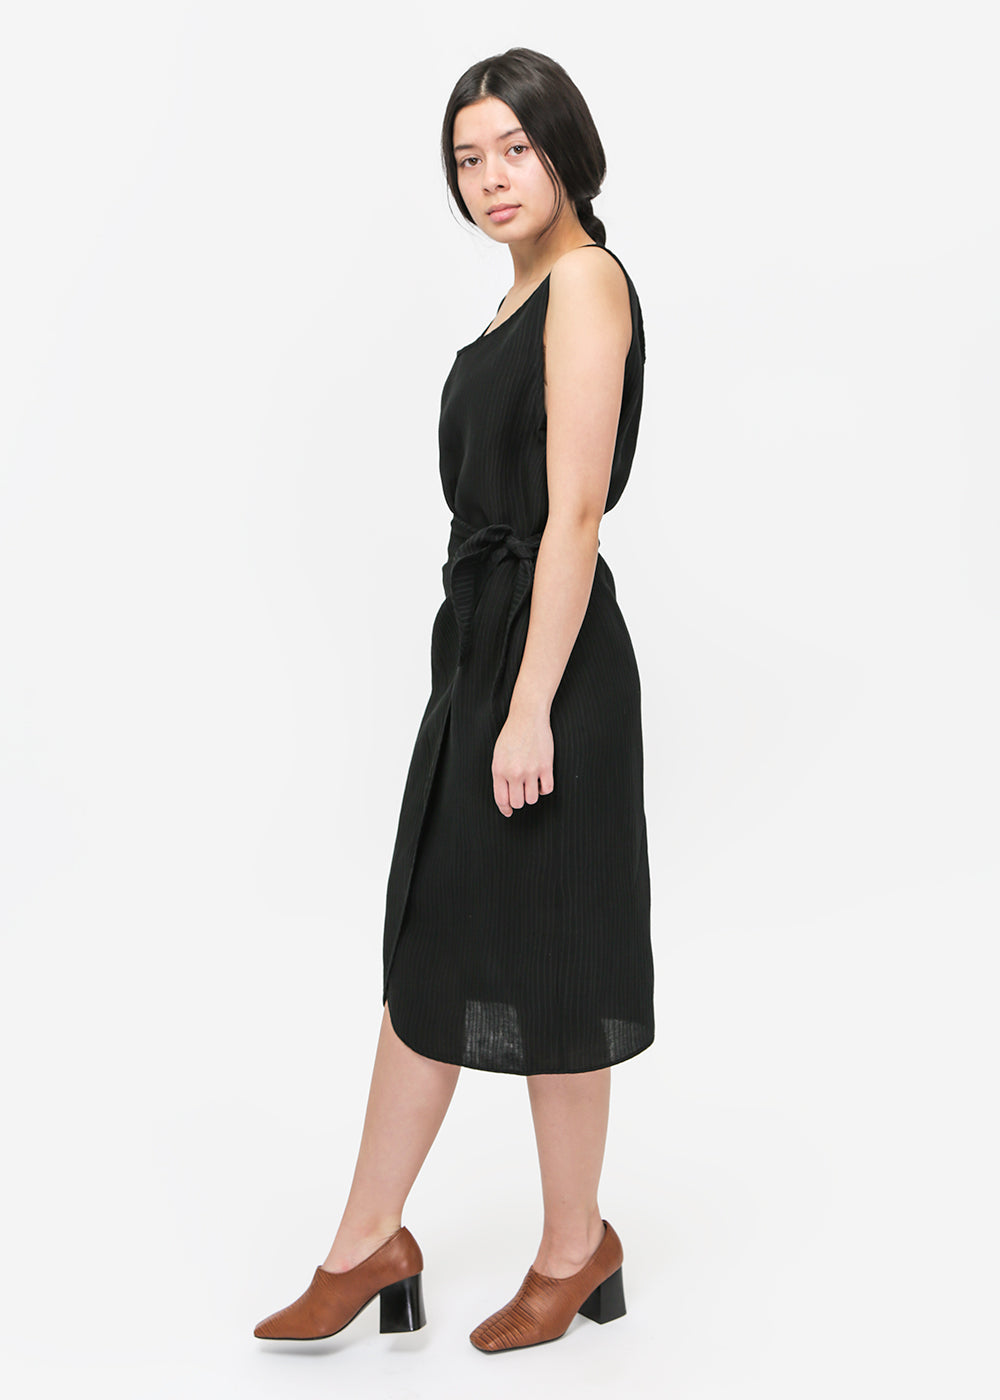 Priory Nett Dress — New Classics Studios